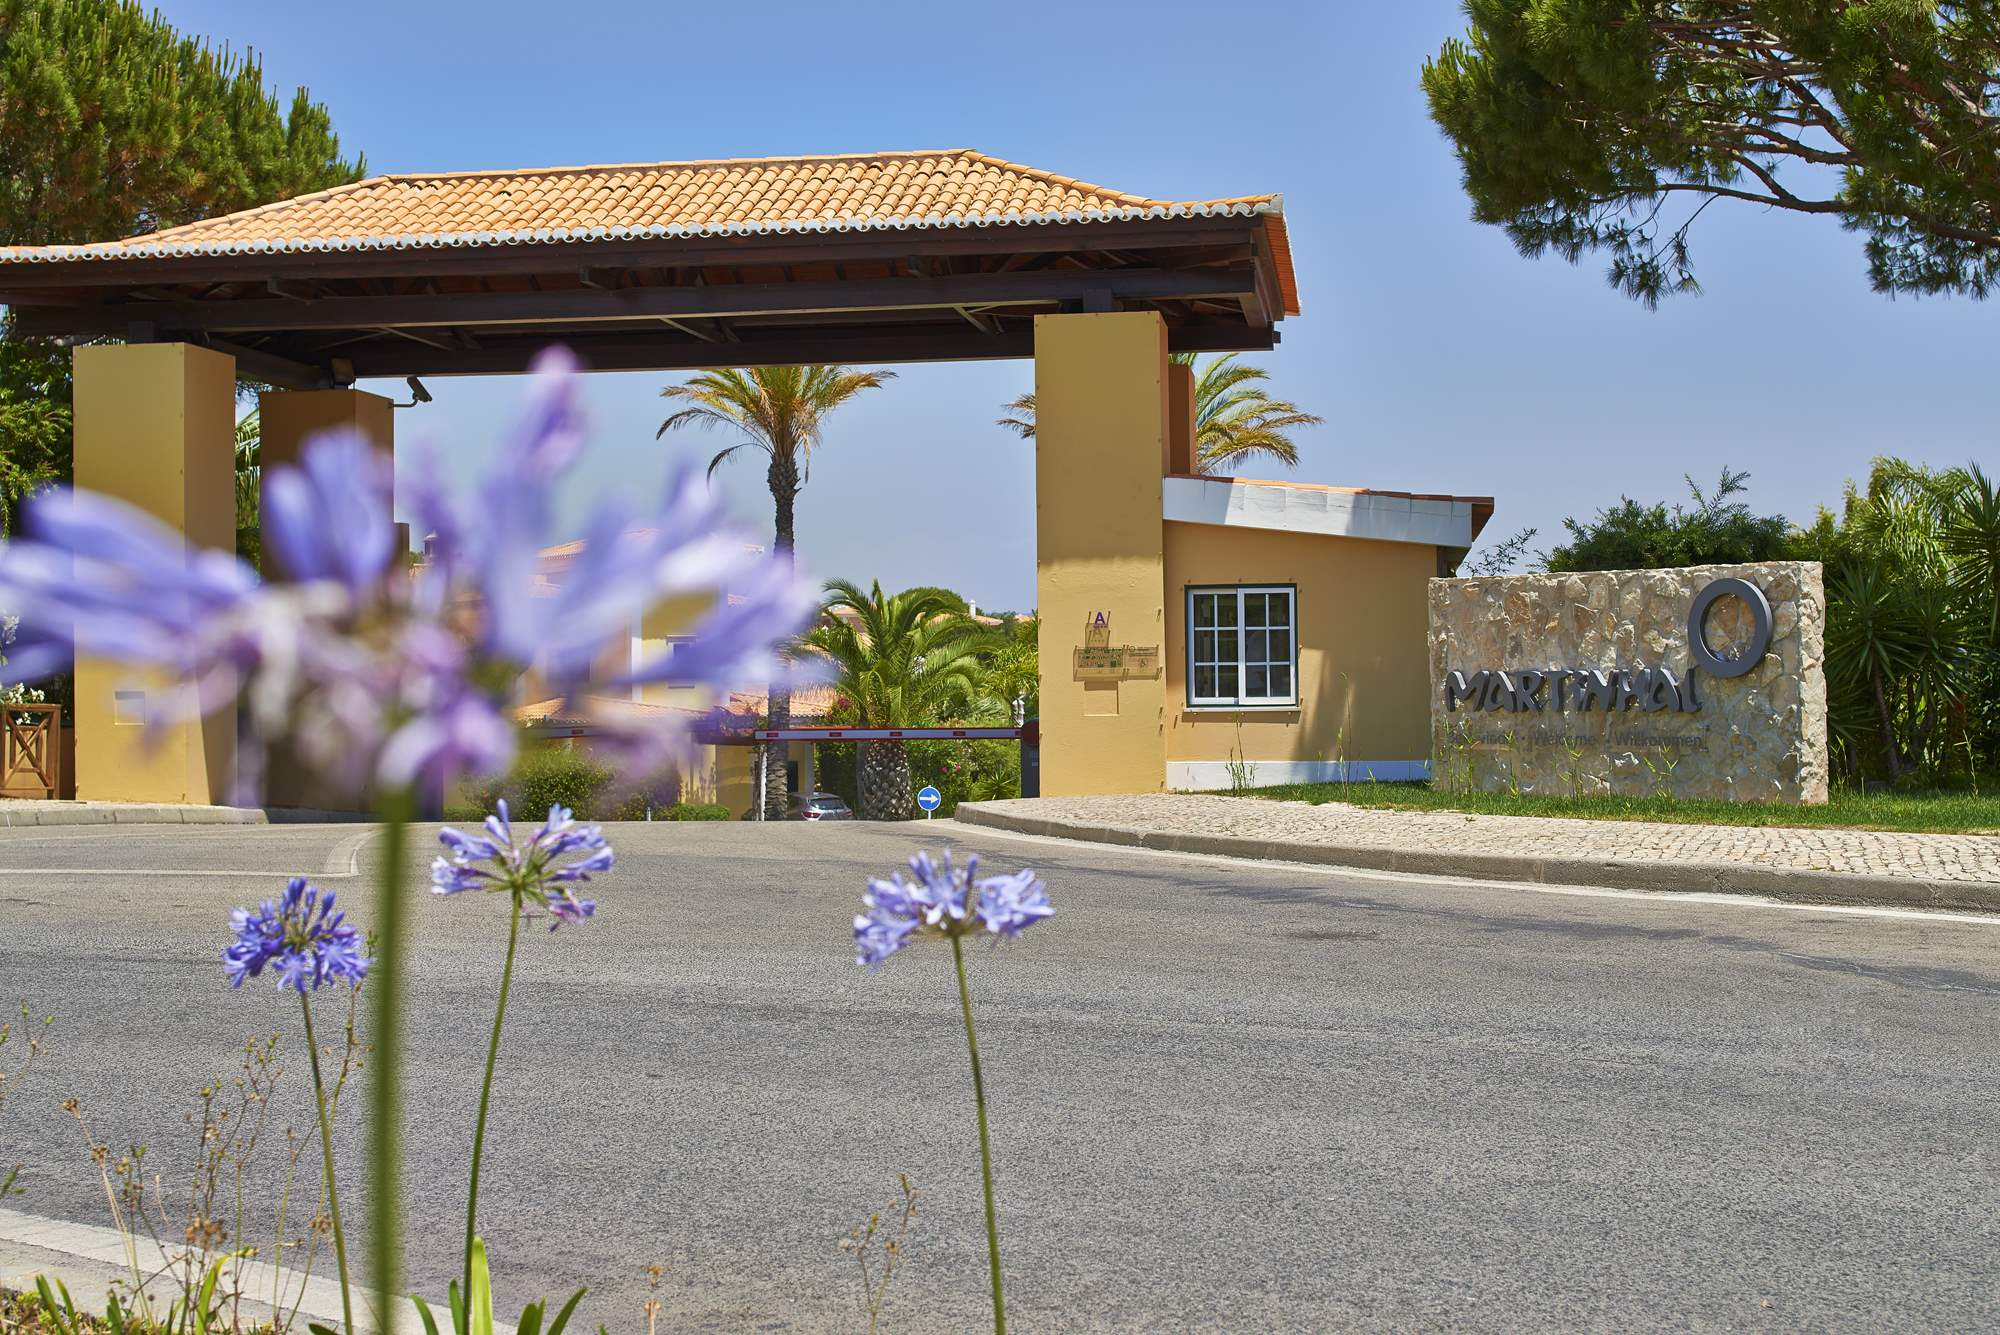 Martinhal Quinta Villa (4 Bedrooms), 4 bedroom villa in Martinhal Quinta Resort, Algarve Photo #28